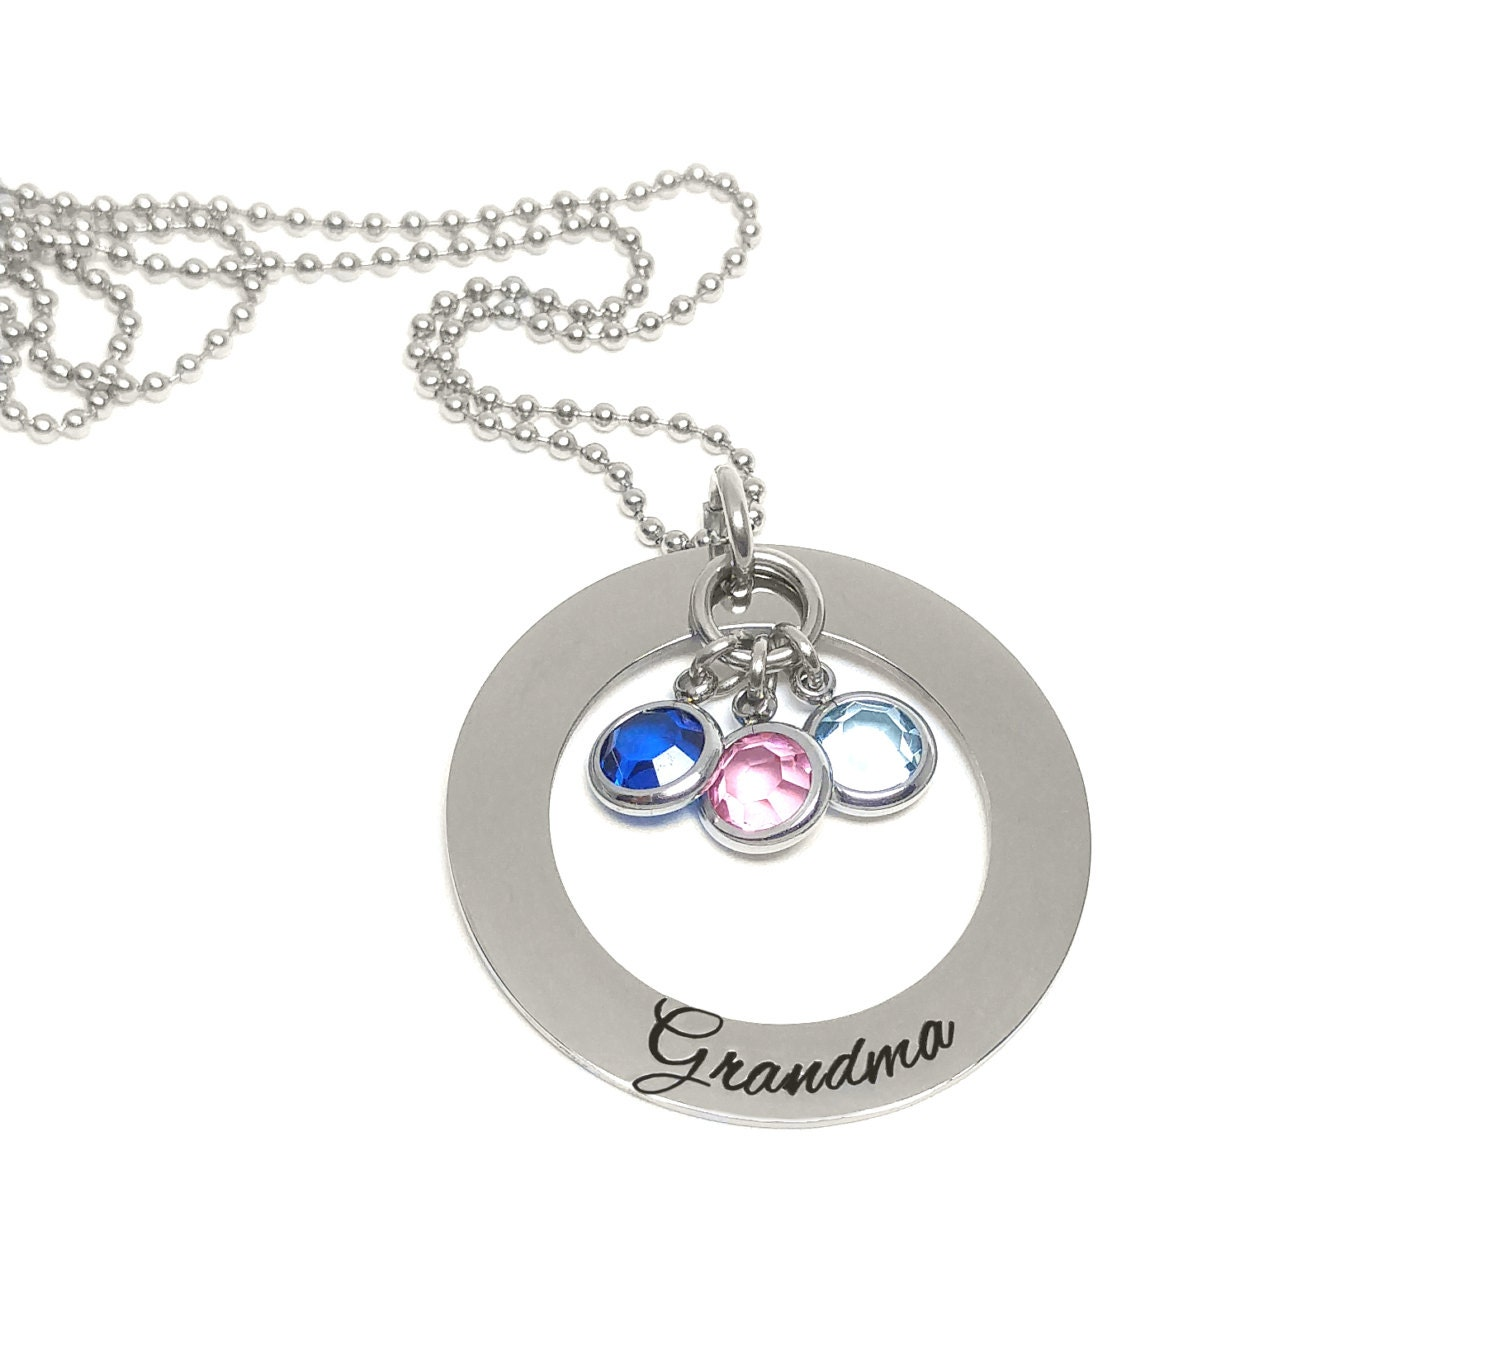 Grandmother birthstone necklace personalized hand for Grandmother jewelry you can add to